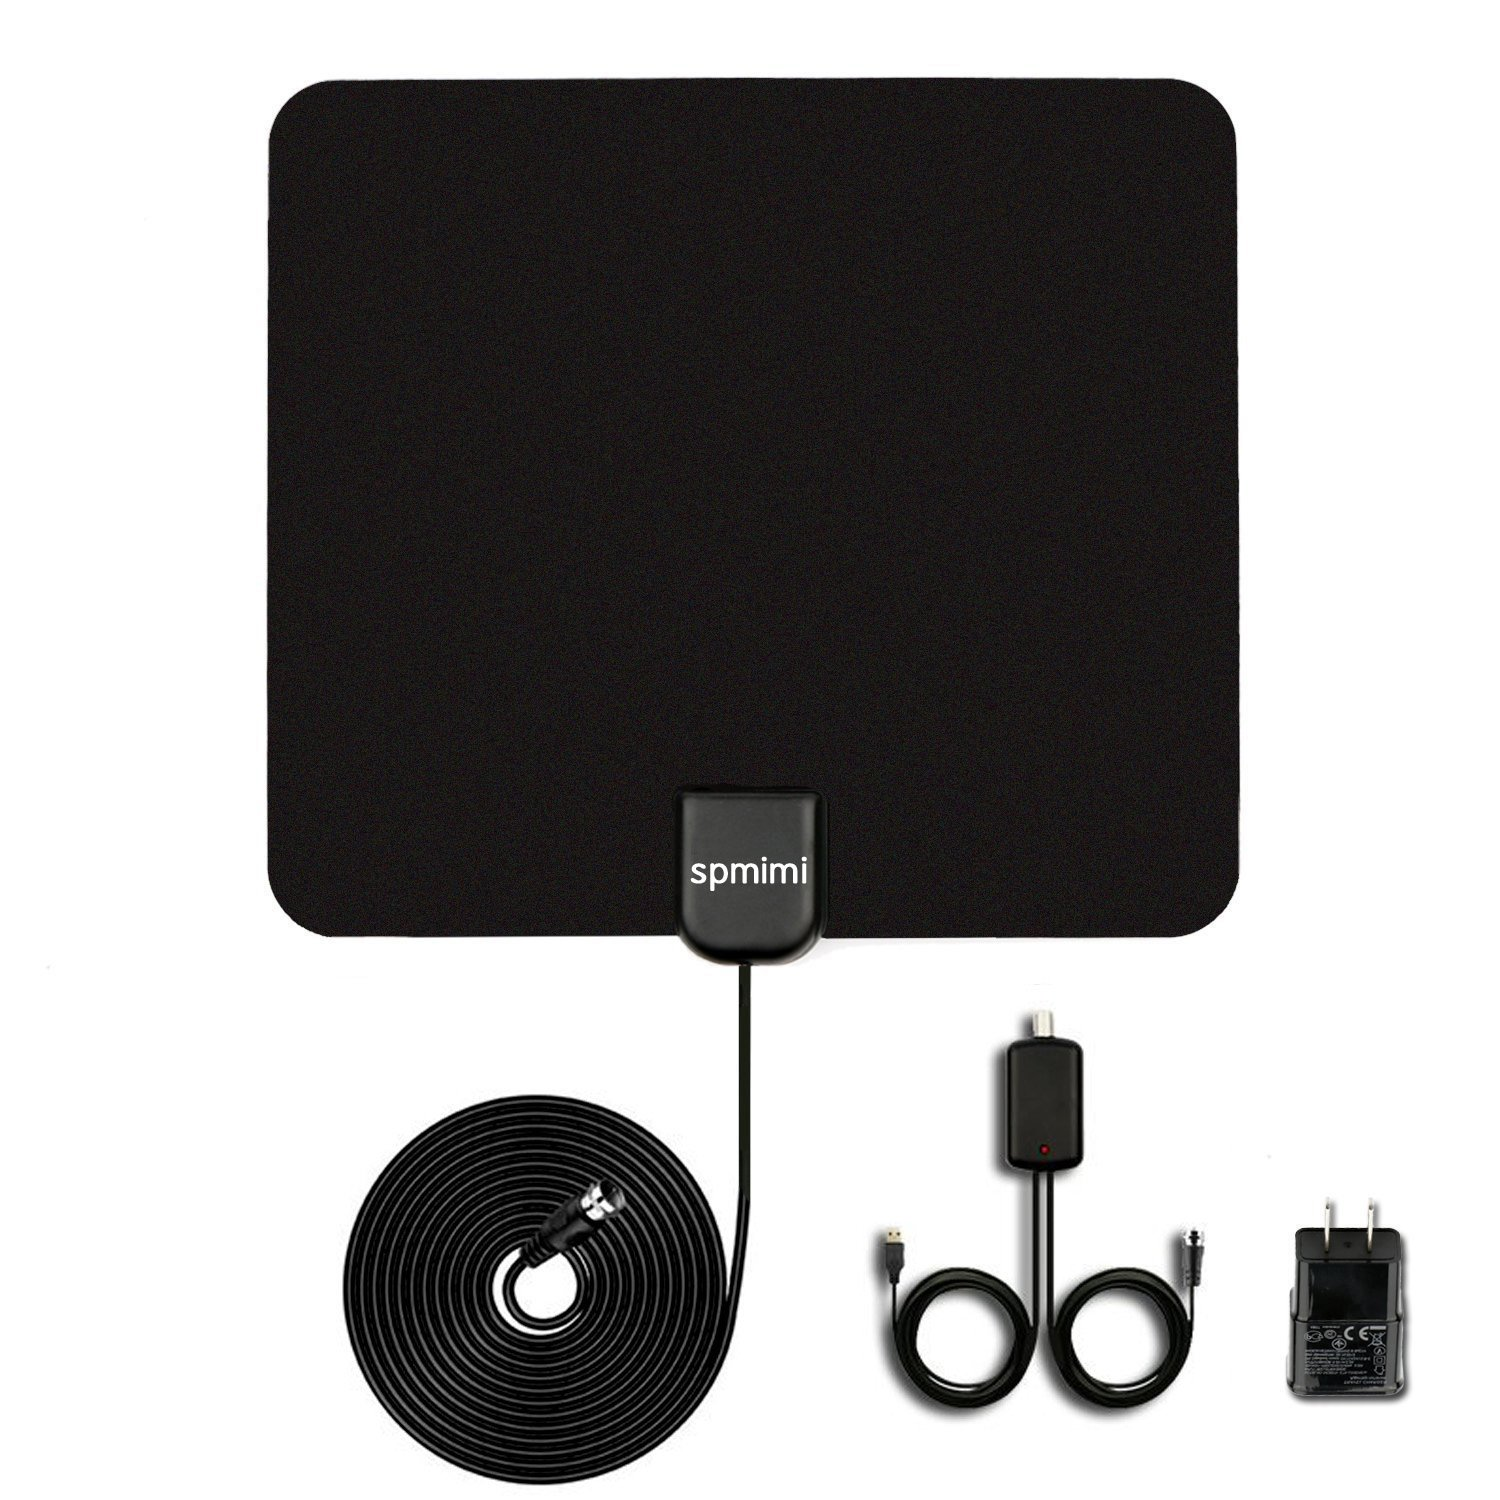 HDTV Indoor Antenna for High Reception Indoor Antenna 50 Miles Range with Detachable Amplifier Digital TV 10ft High Performance Coax Cable